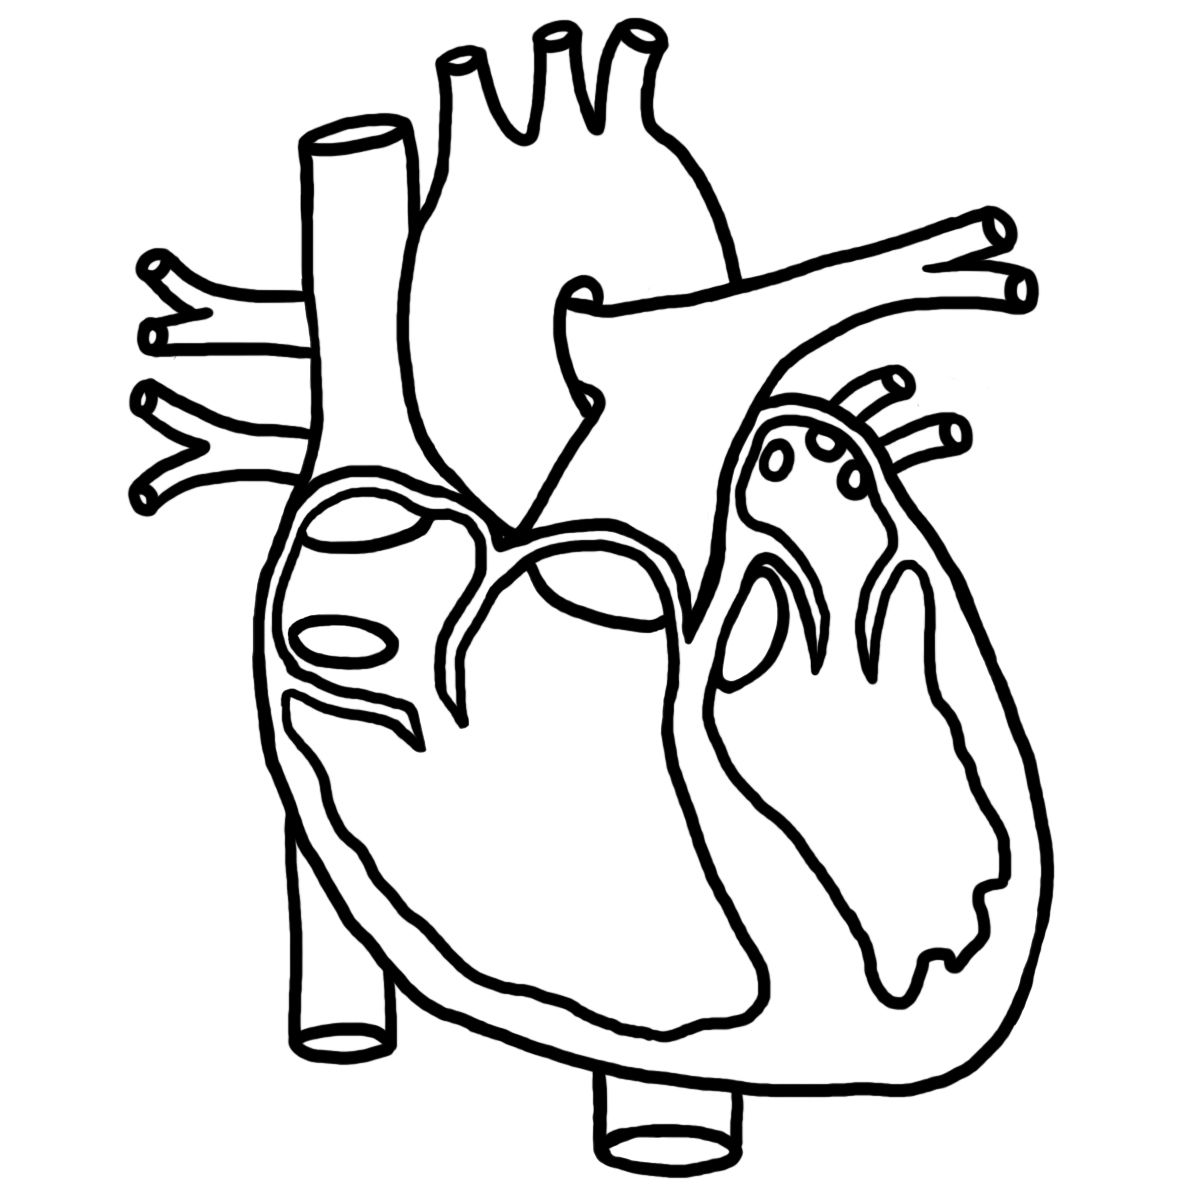 Human Anatomy Colouring Pages Heart Coloring Pages Human Heart